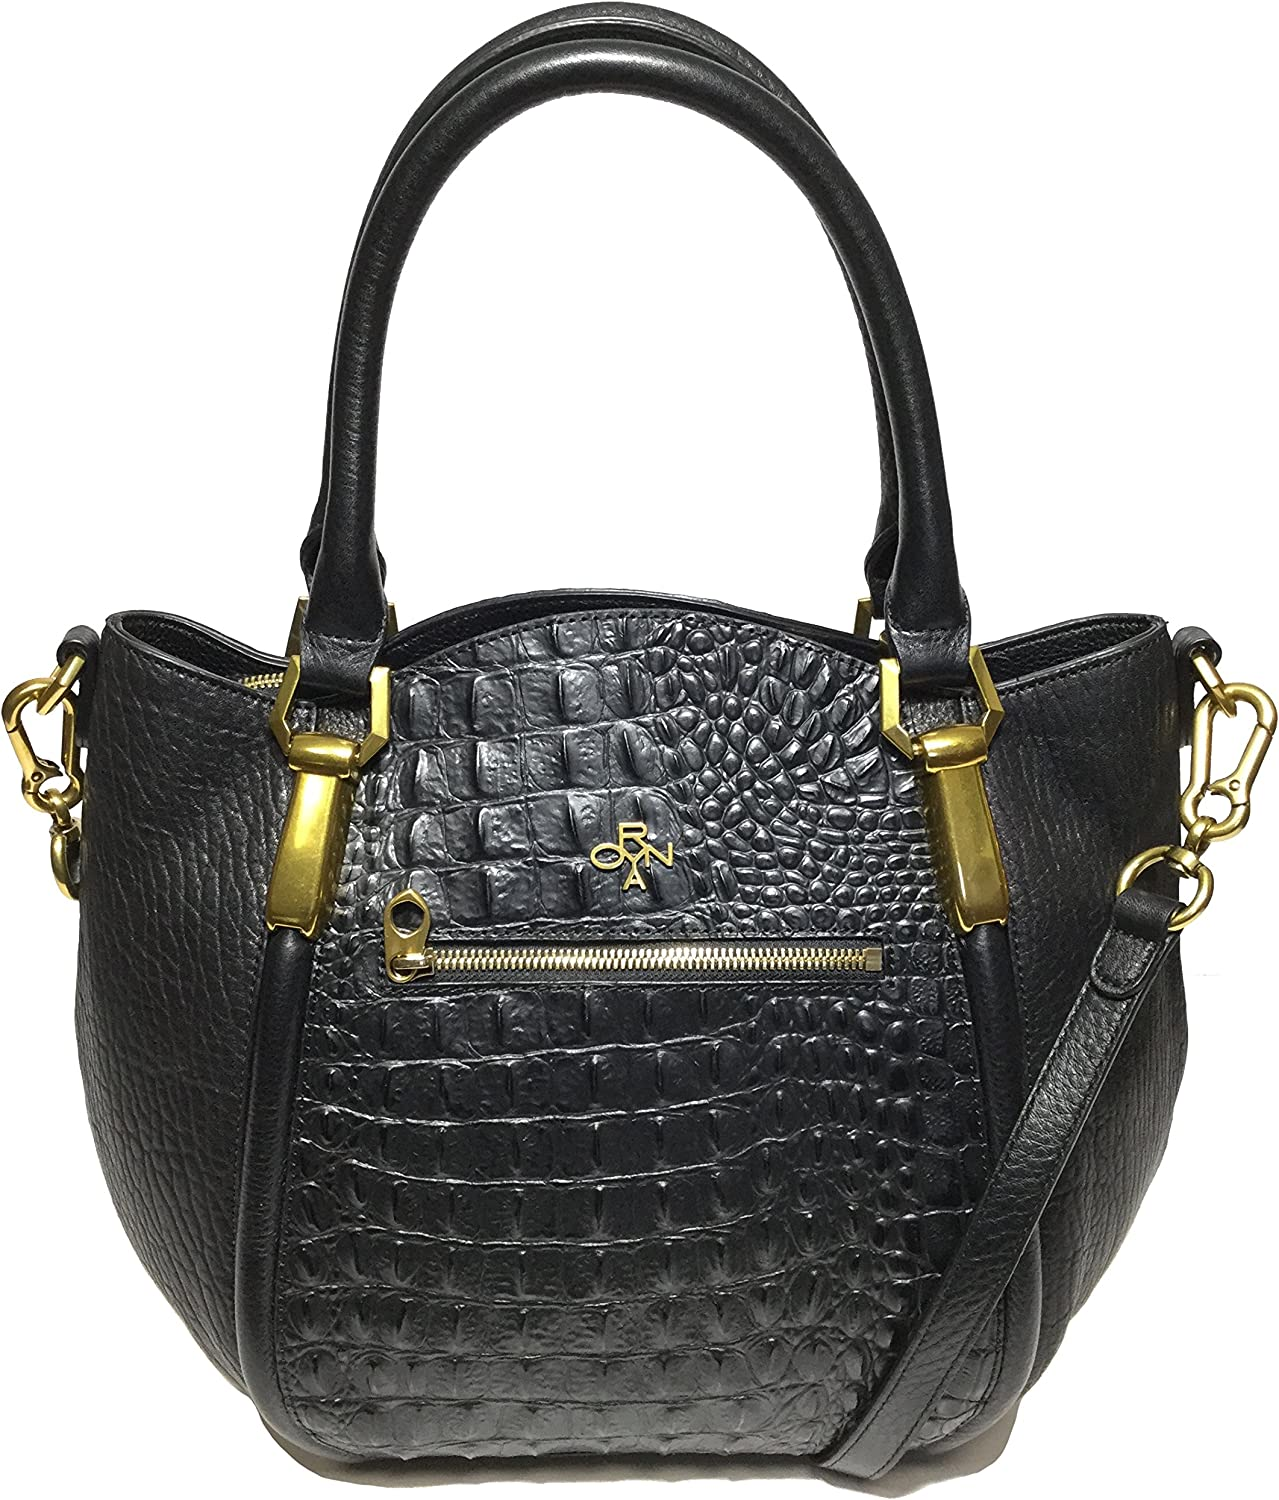 OrYANY Woman's Leather Croco Satchel, Black